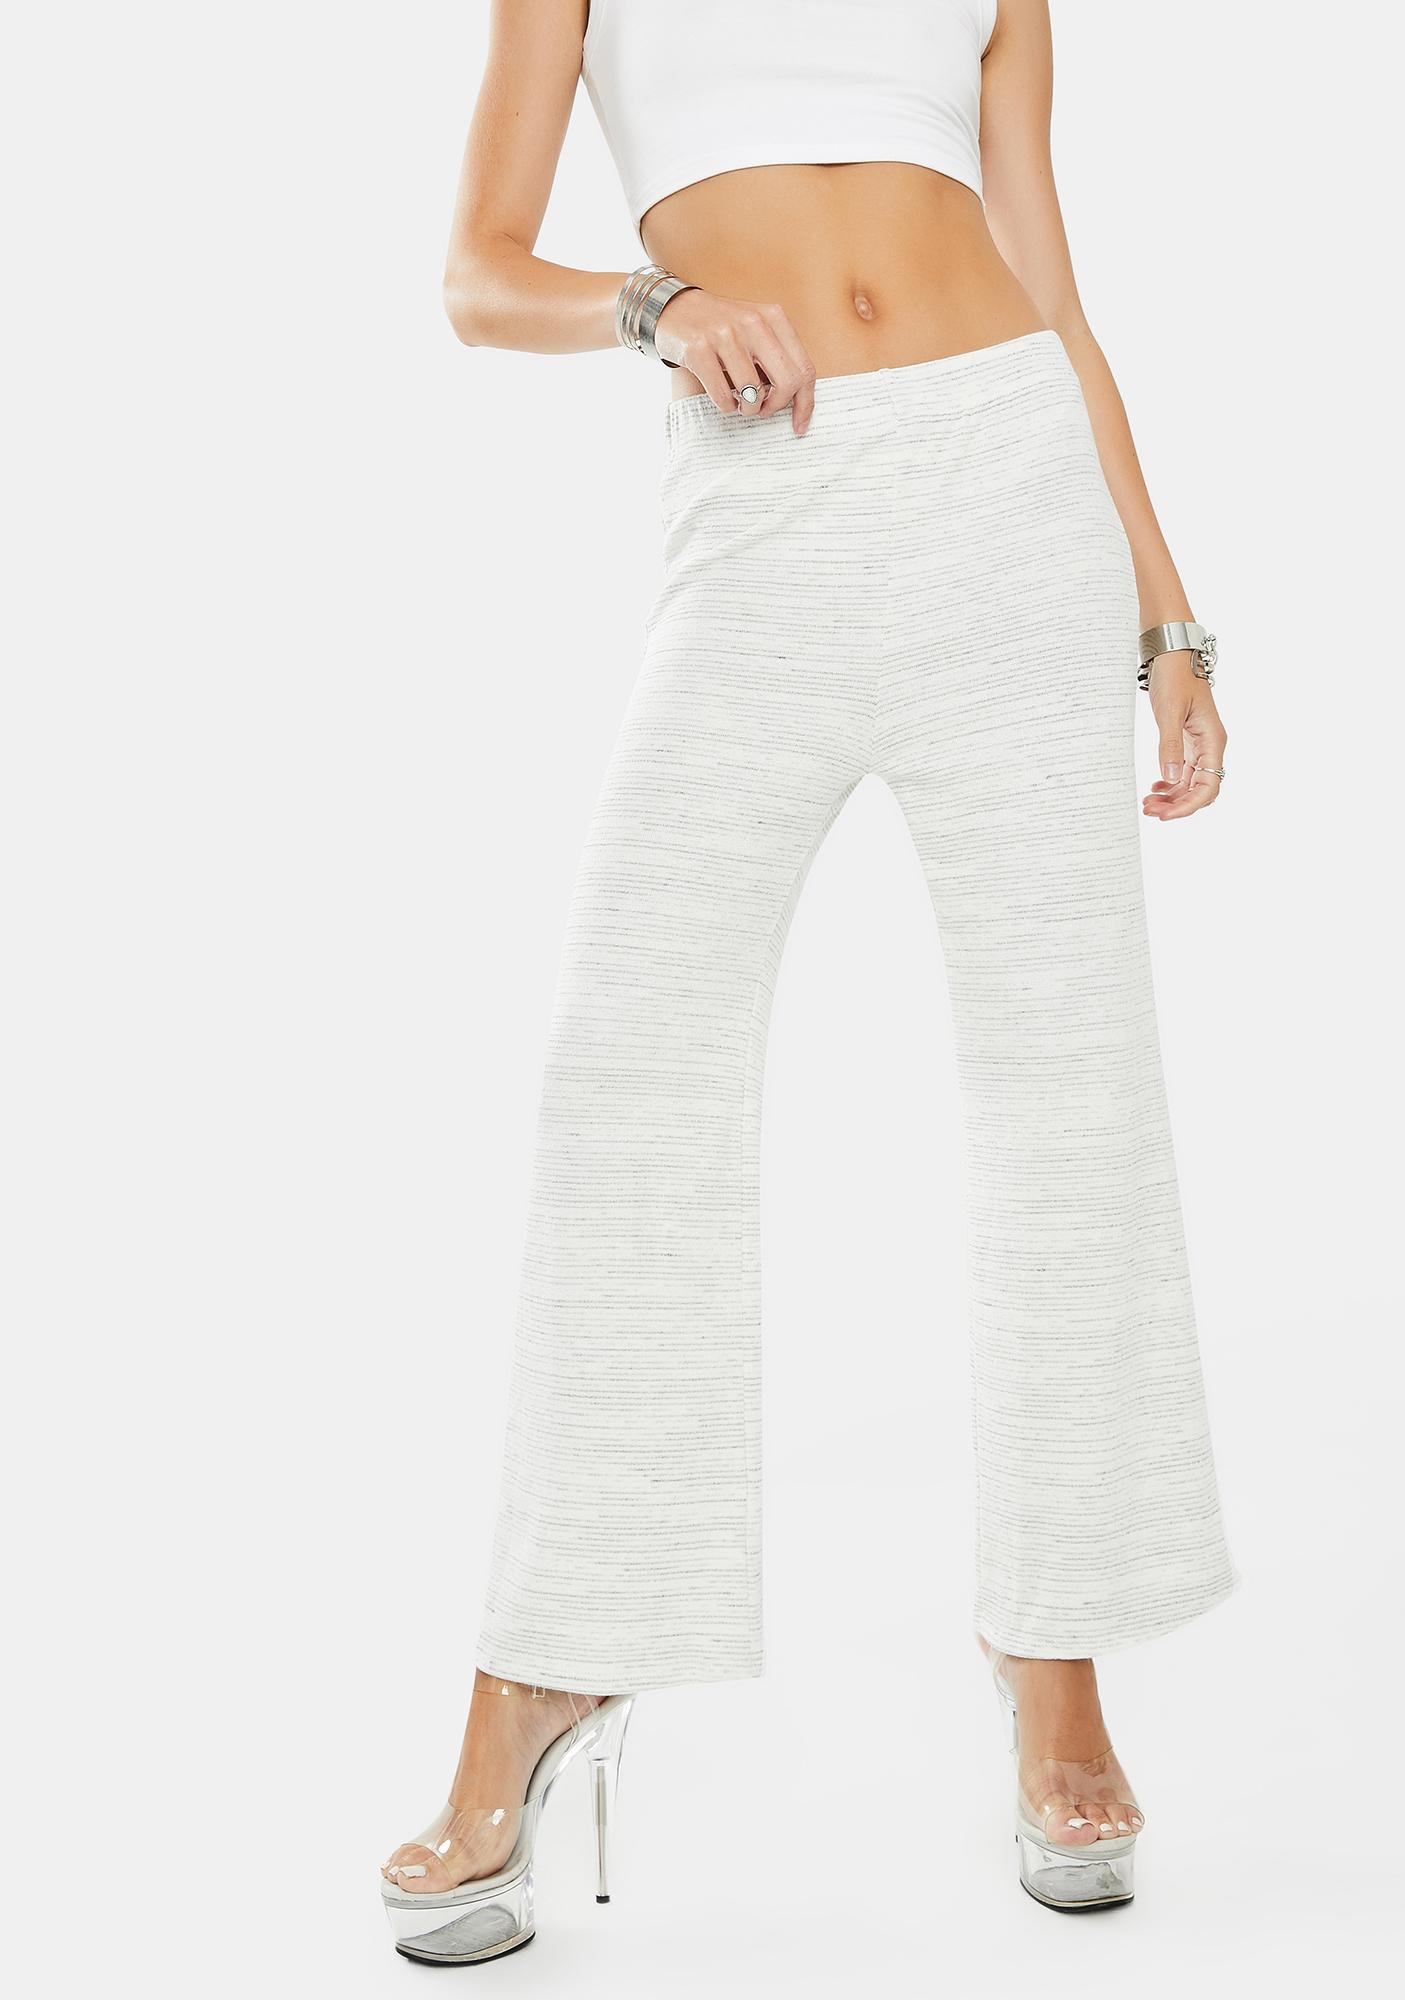 Bailey Rose Comfy Flare Sweatpants